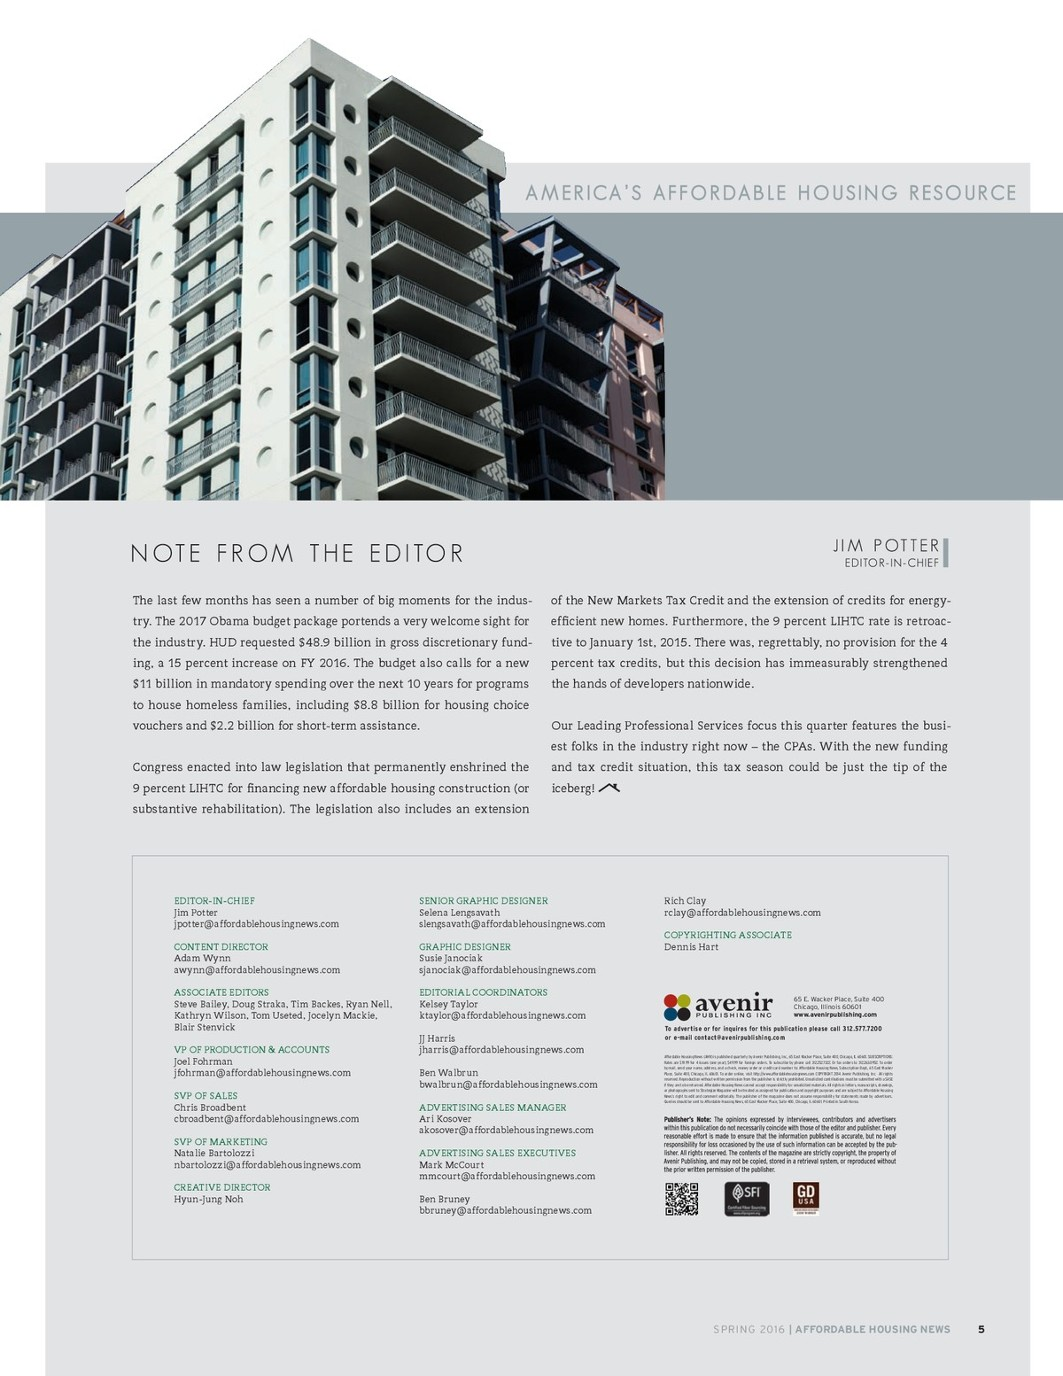 Affordable Housing News, Spring 2016 Issue